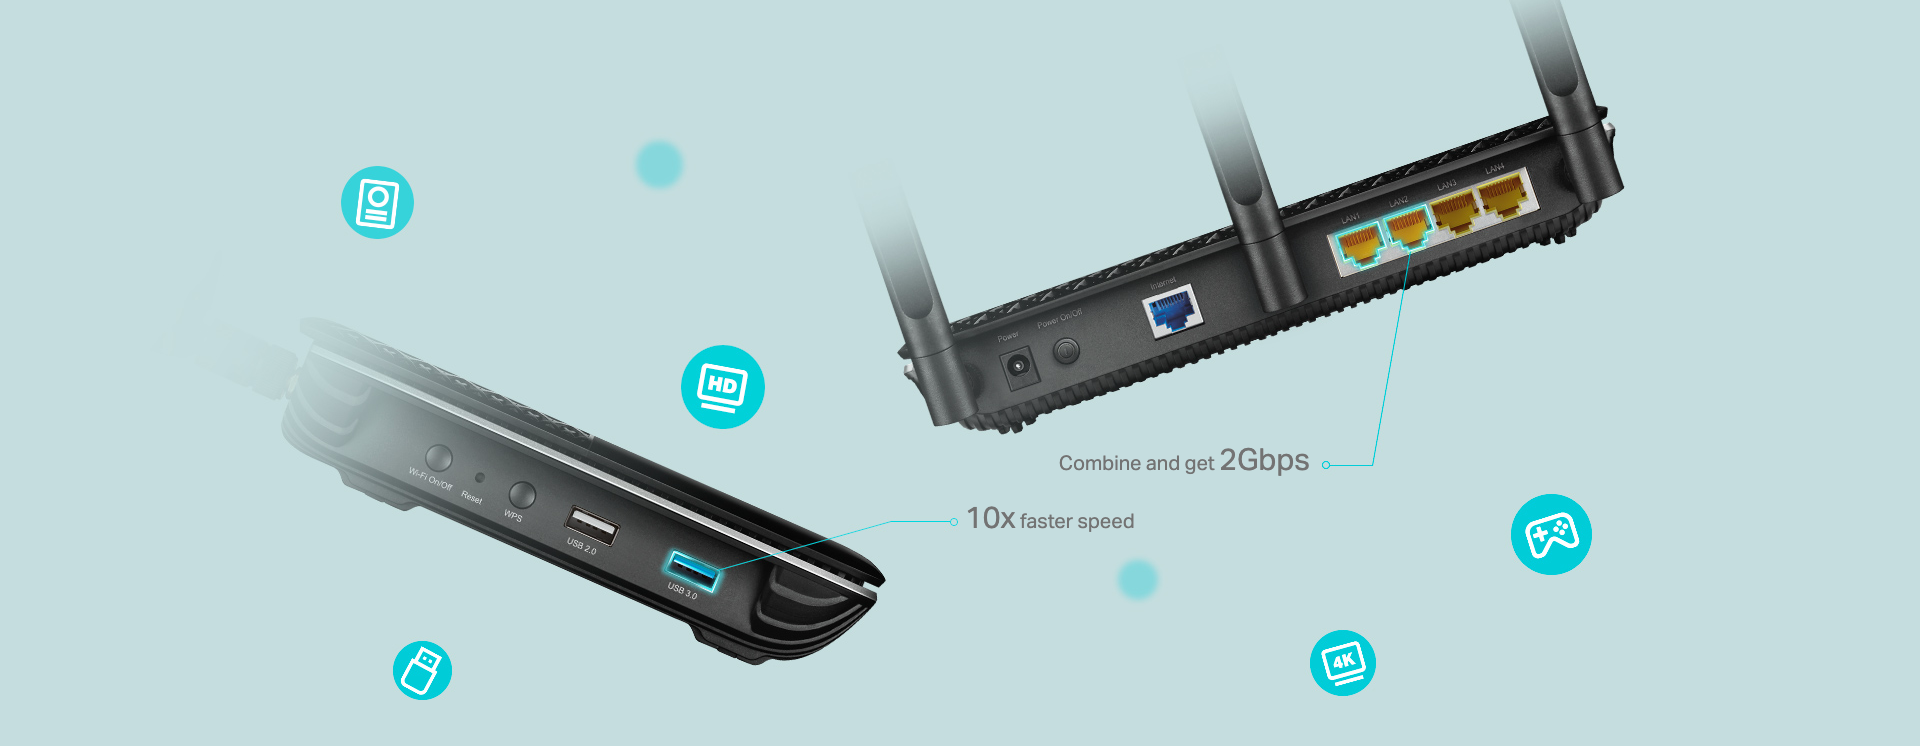 Media Sharing for More Fun USB 3.0 and 2.0 ports make it easy to share photos, videos, and music on your home network.  When away from home, a VPN allows you to securely access NAS drives and other devices connected to the router through USB.